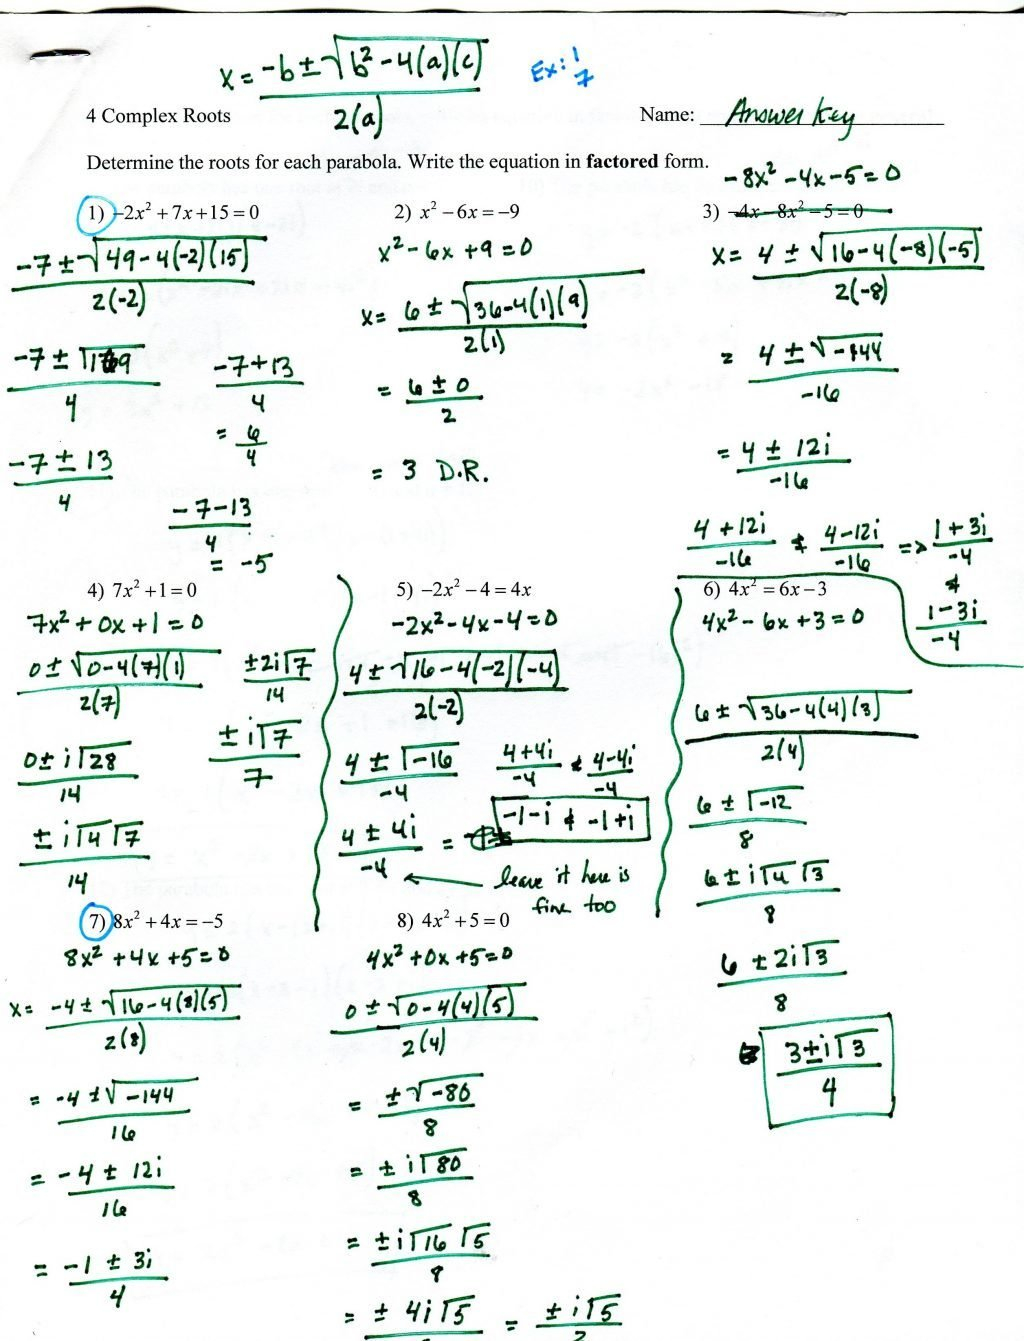 Factoring Trinomials Worksheet With Answer Key Integers Worksheet As Well As Factoring Trinomials Worksheet With Answer Key